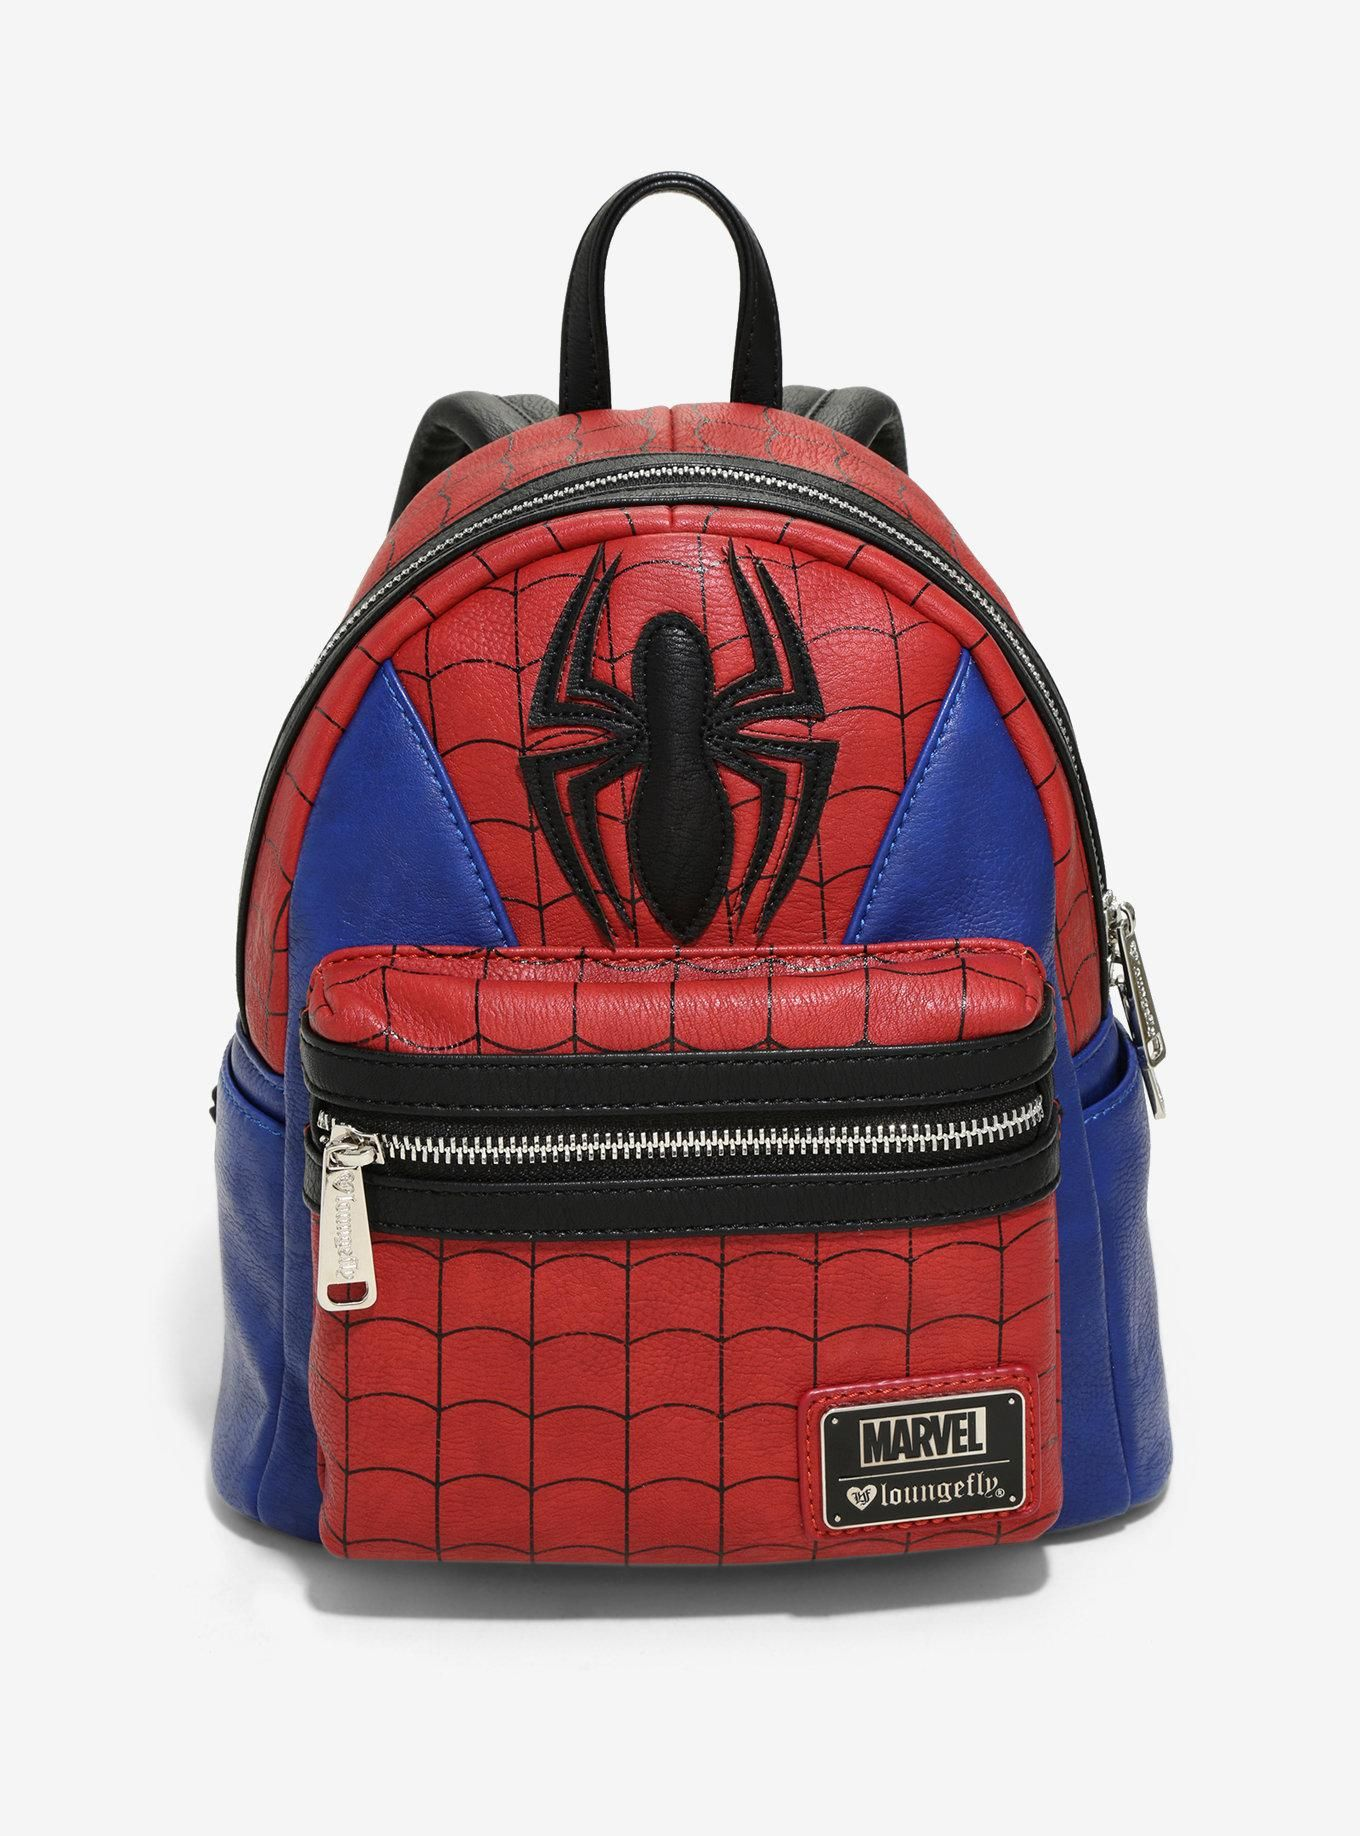 Loungefly Marvel Spider-Man Suit Mini Backpack  b3cf4854e5693